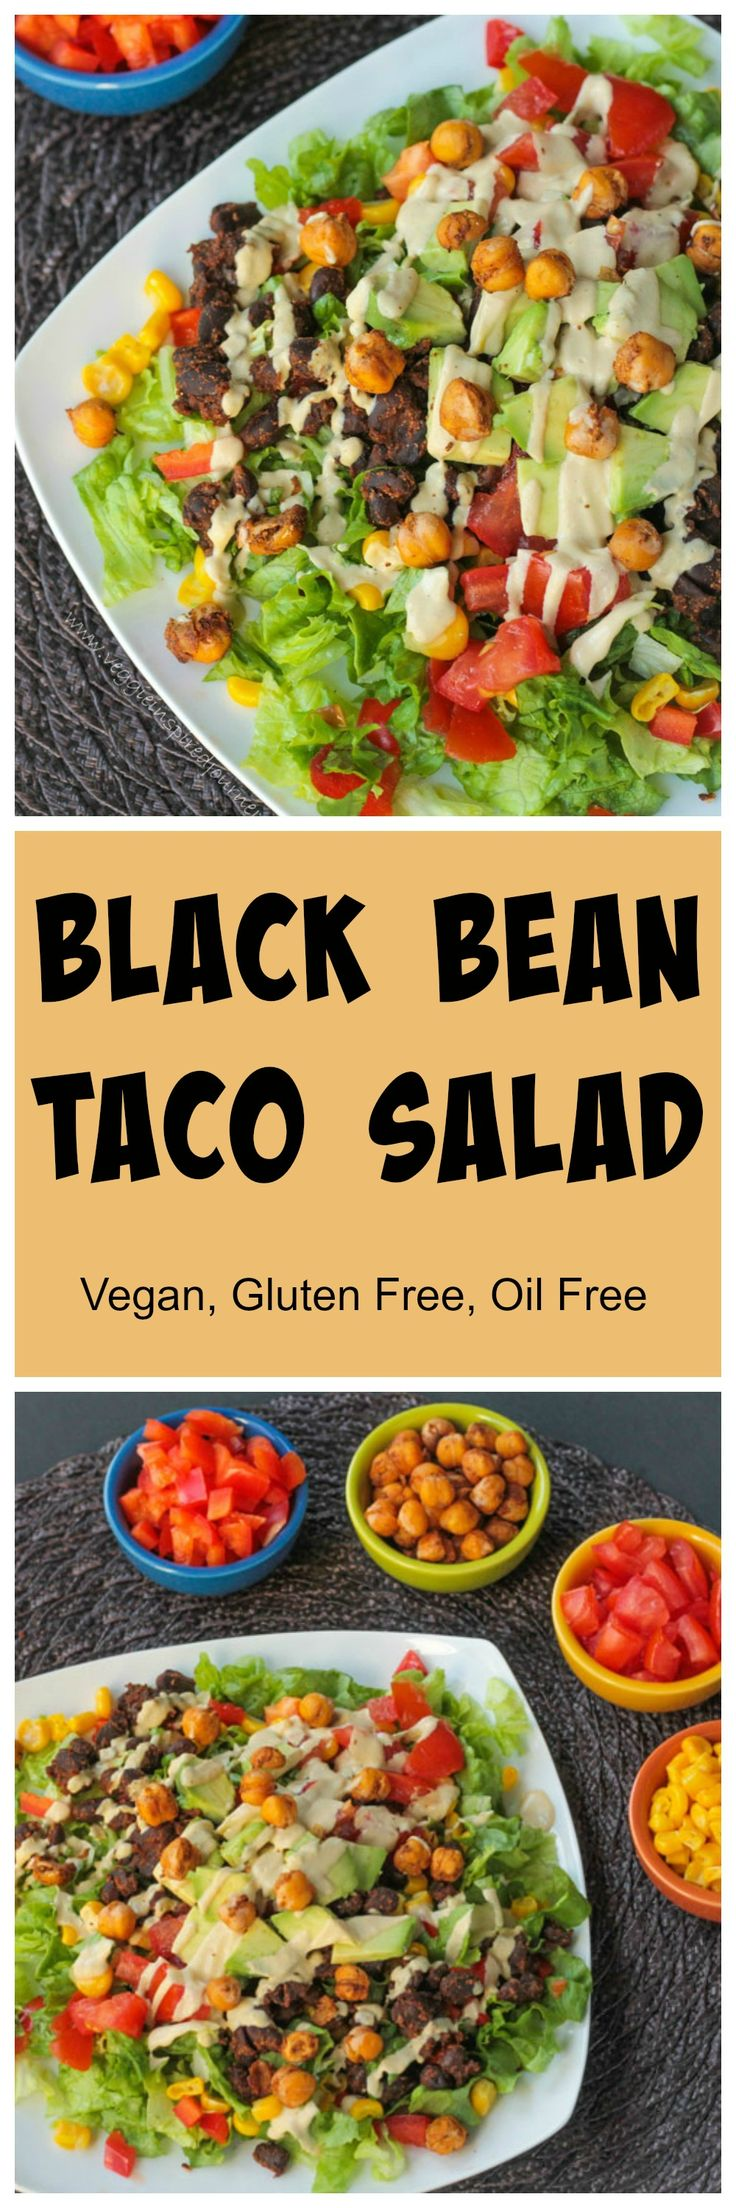 Quick and Easy, Healthy Black Bean Taco Salad - The perfect easy weeknight meal but still full of flavor!